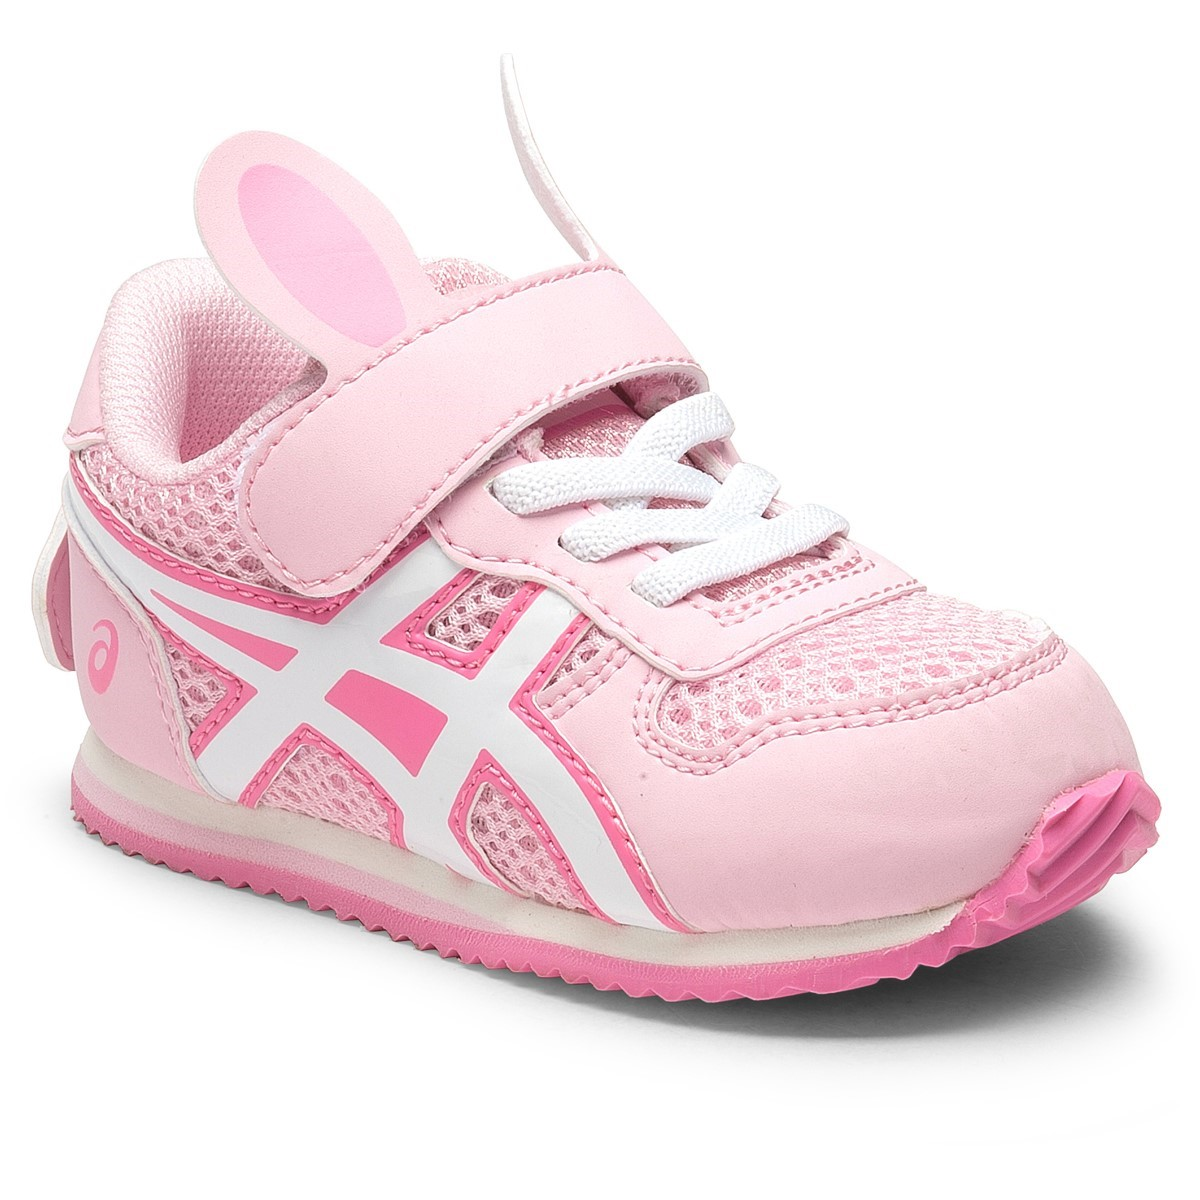 puma shoes zippay australian animals for kids